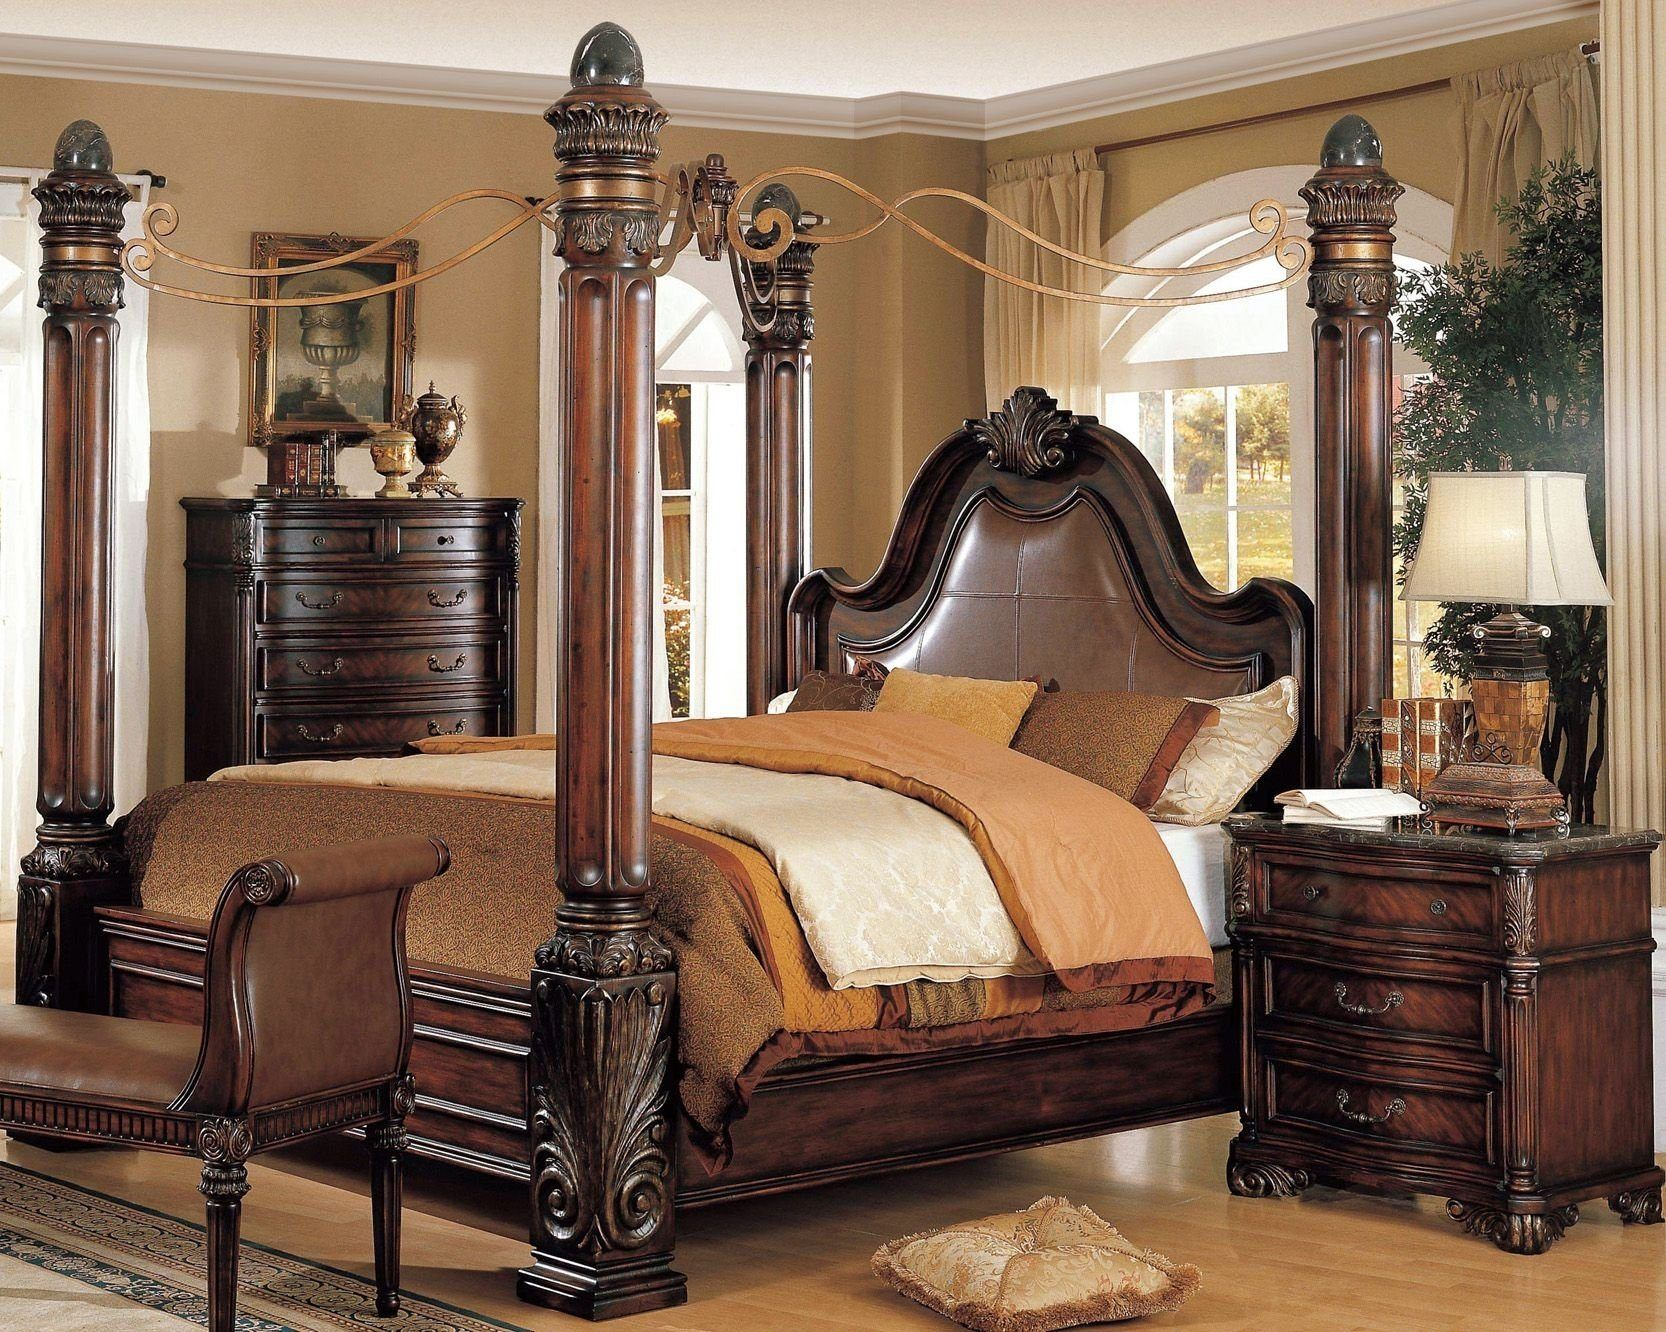 wonderful thomasville bedroom furniture bed frame with poles and ...